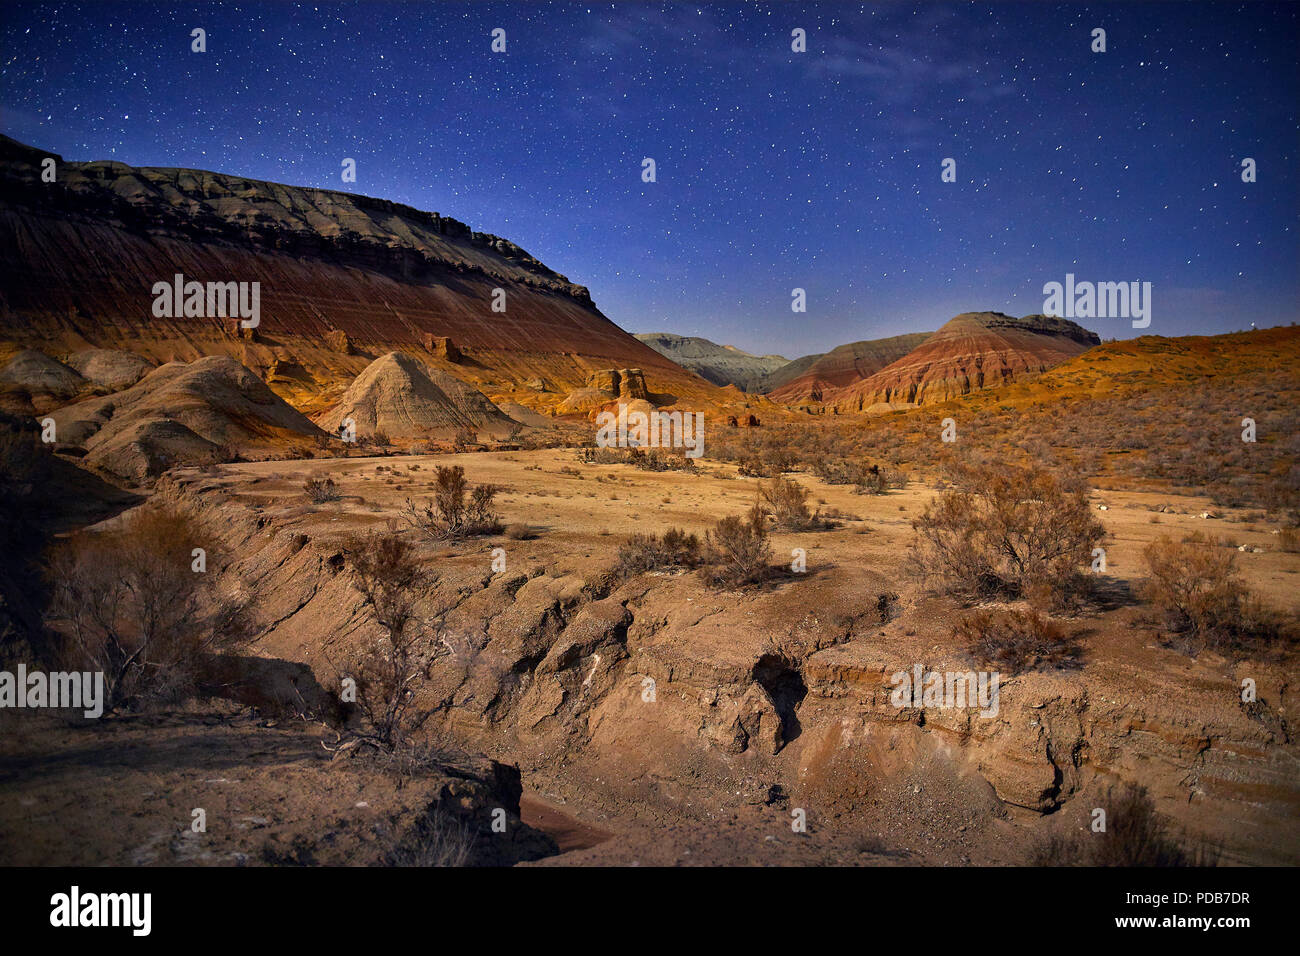 Red mountains in the canyon desert at night starry sky background. Astronomy photography of space and landscape. - Stock Image